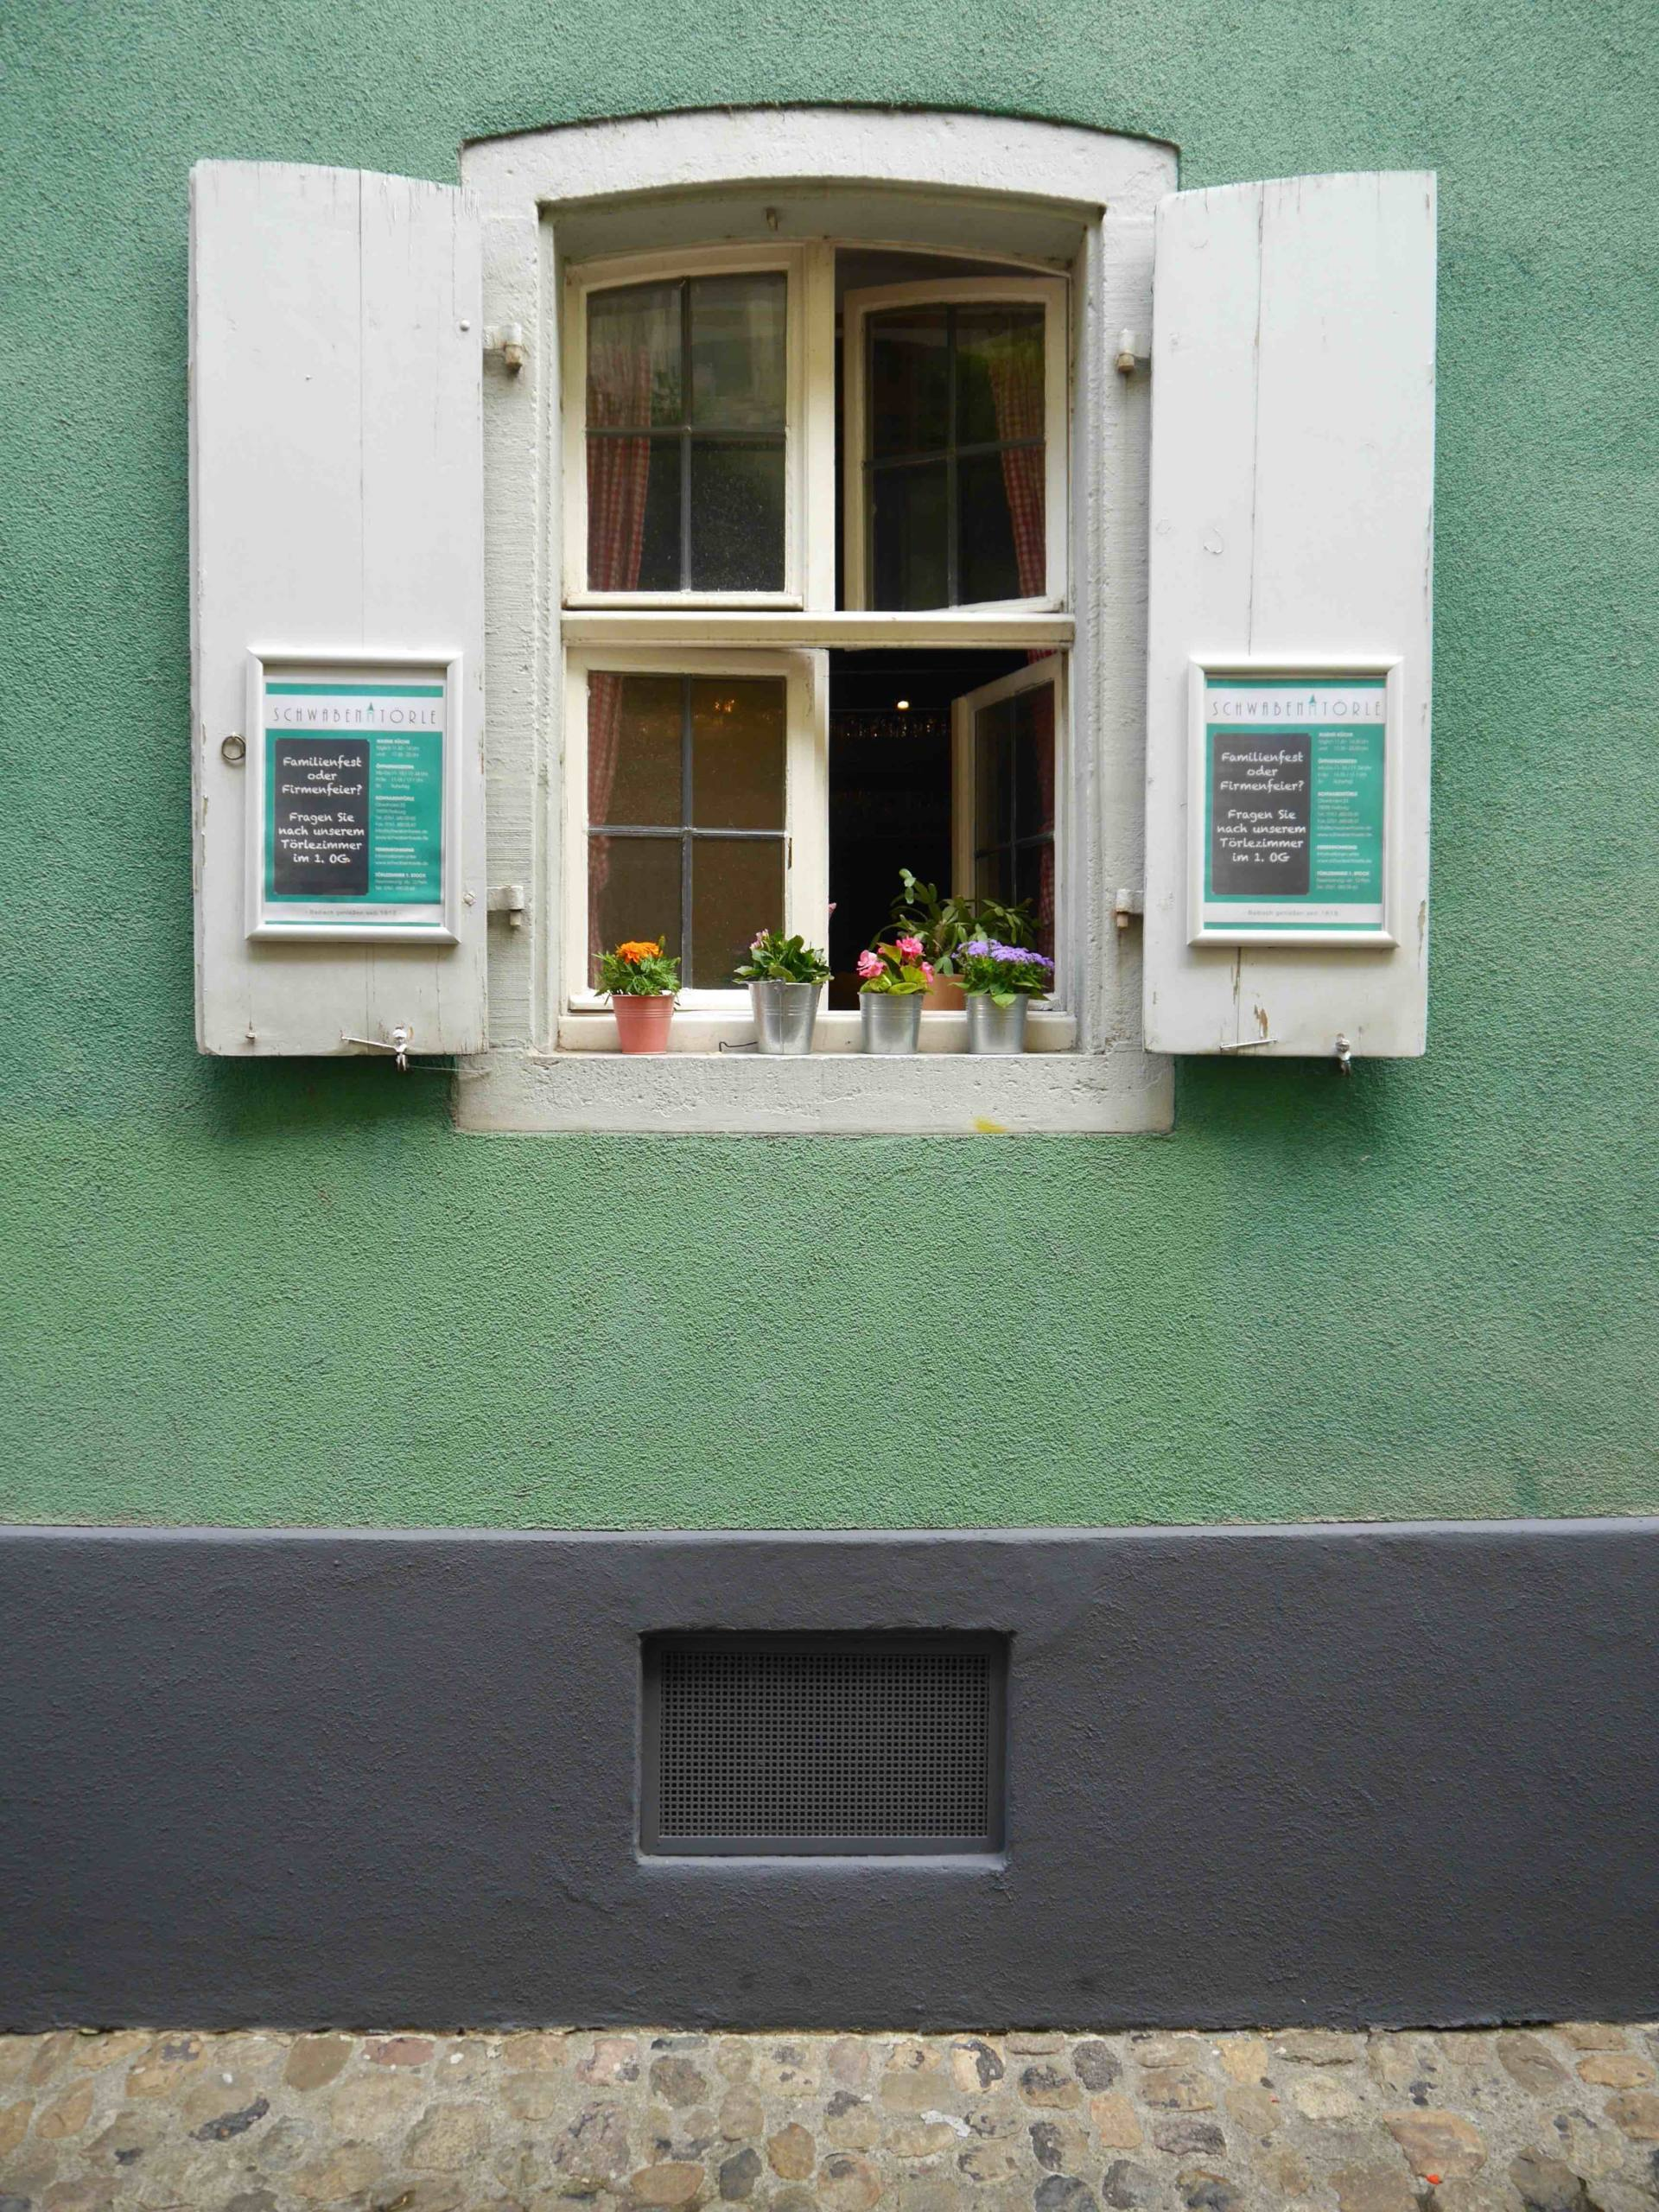 Green Wall with White Shutters | Most Instagrammable Places in Freiburg